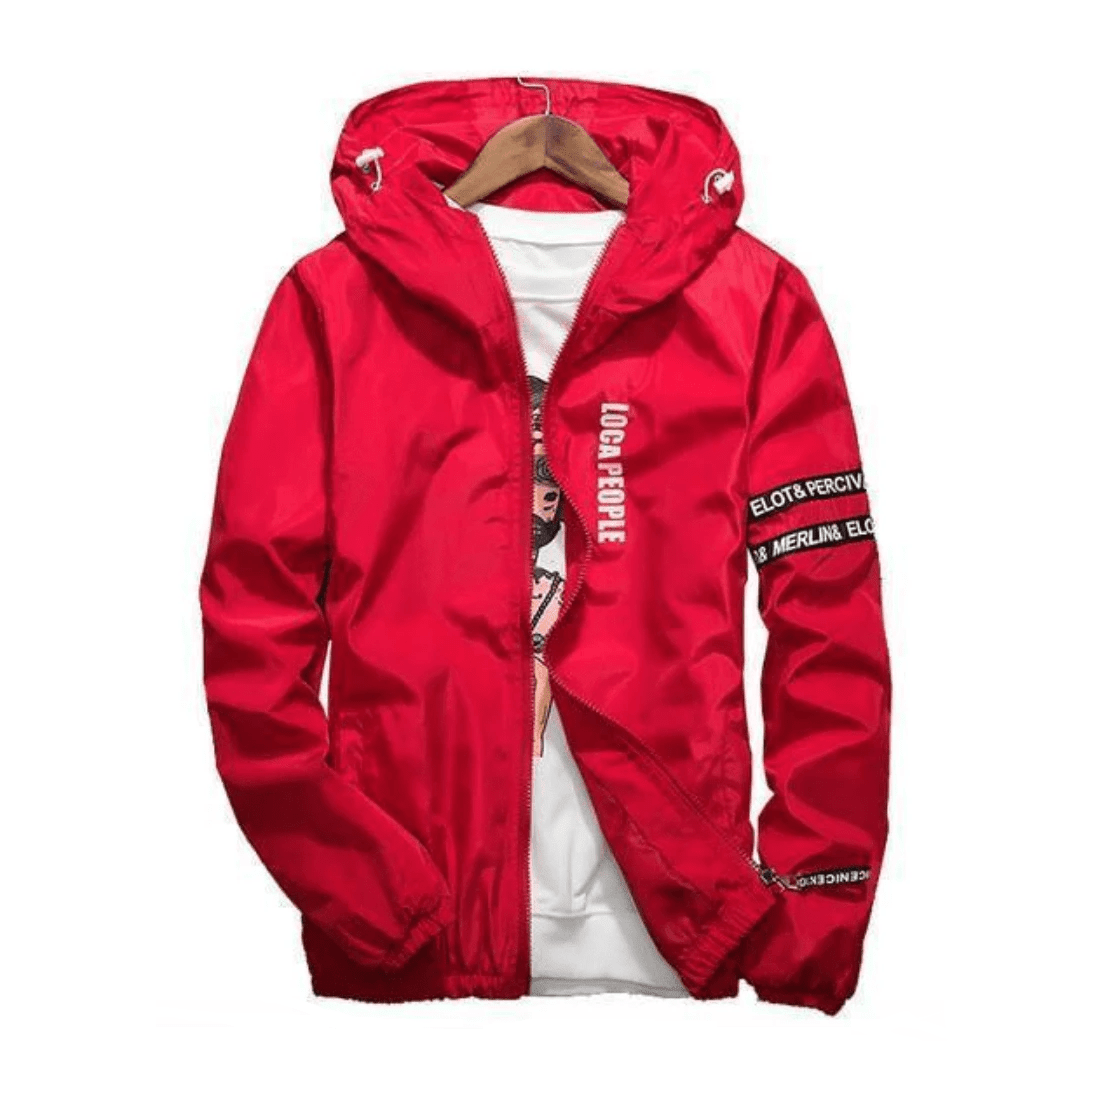 Hypest Fit outerwear RED / S CRASSUS Windbreaker (7 colors)